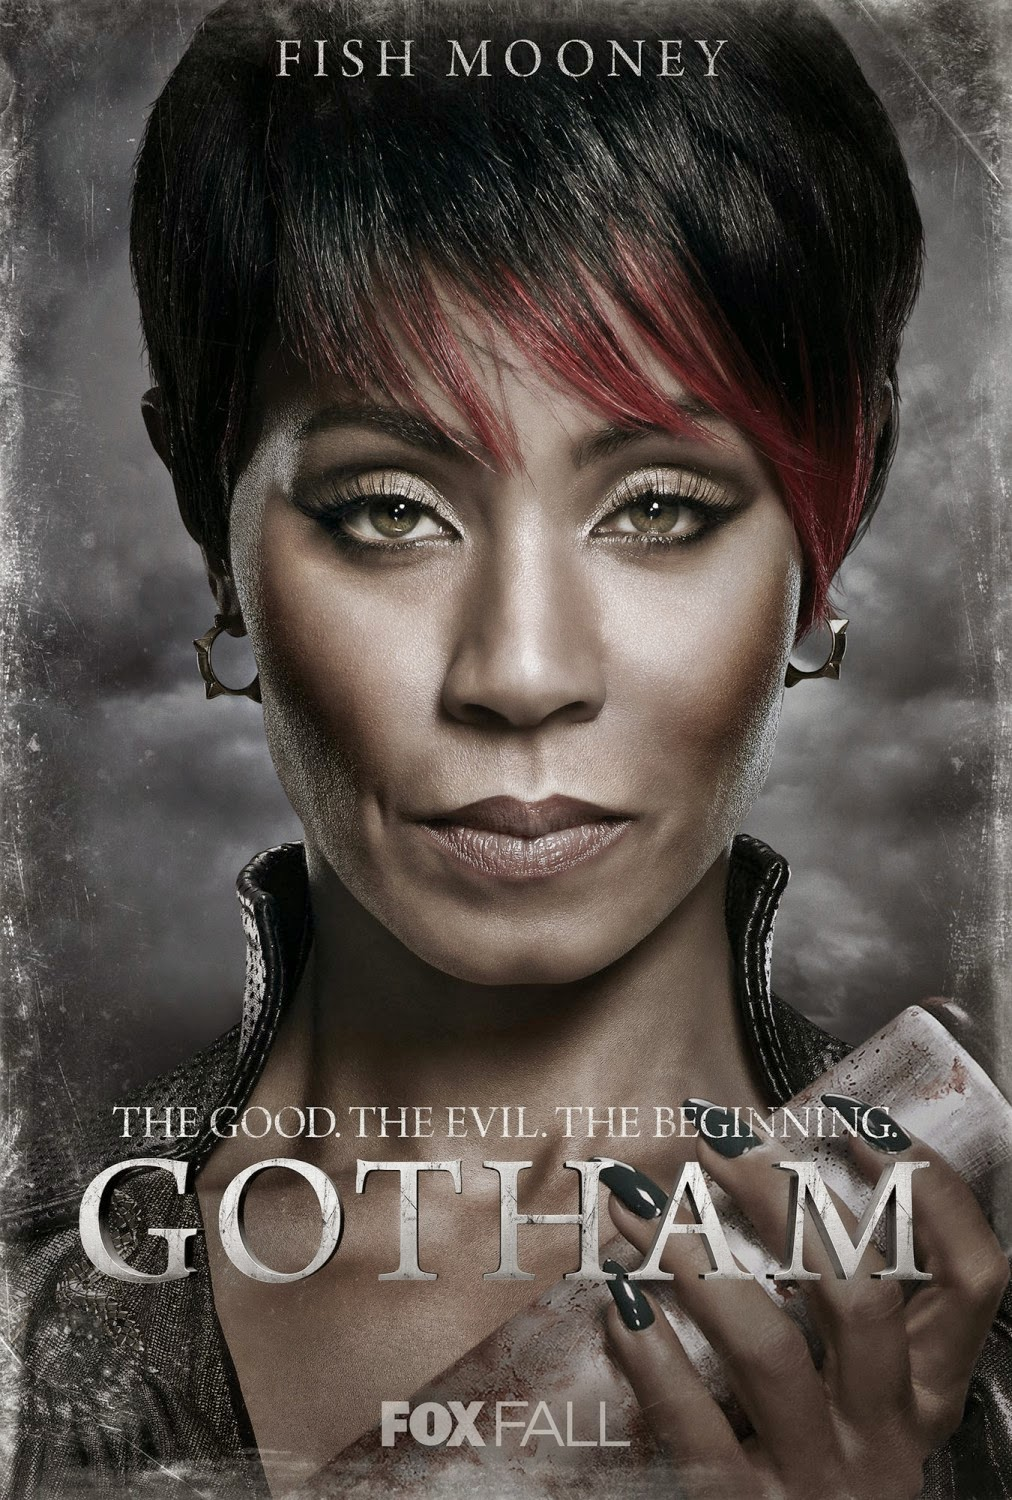 "Gotham ""The Good. The Evil. The Beginning."" Character TV Poster Set - Jada Pinkett Smith as Fish Mooney"